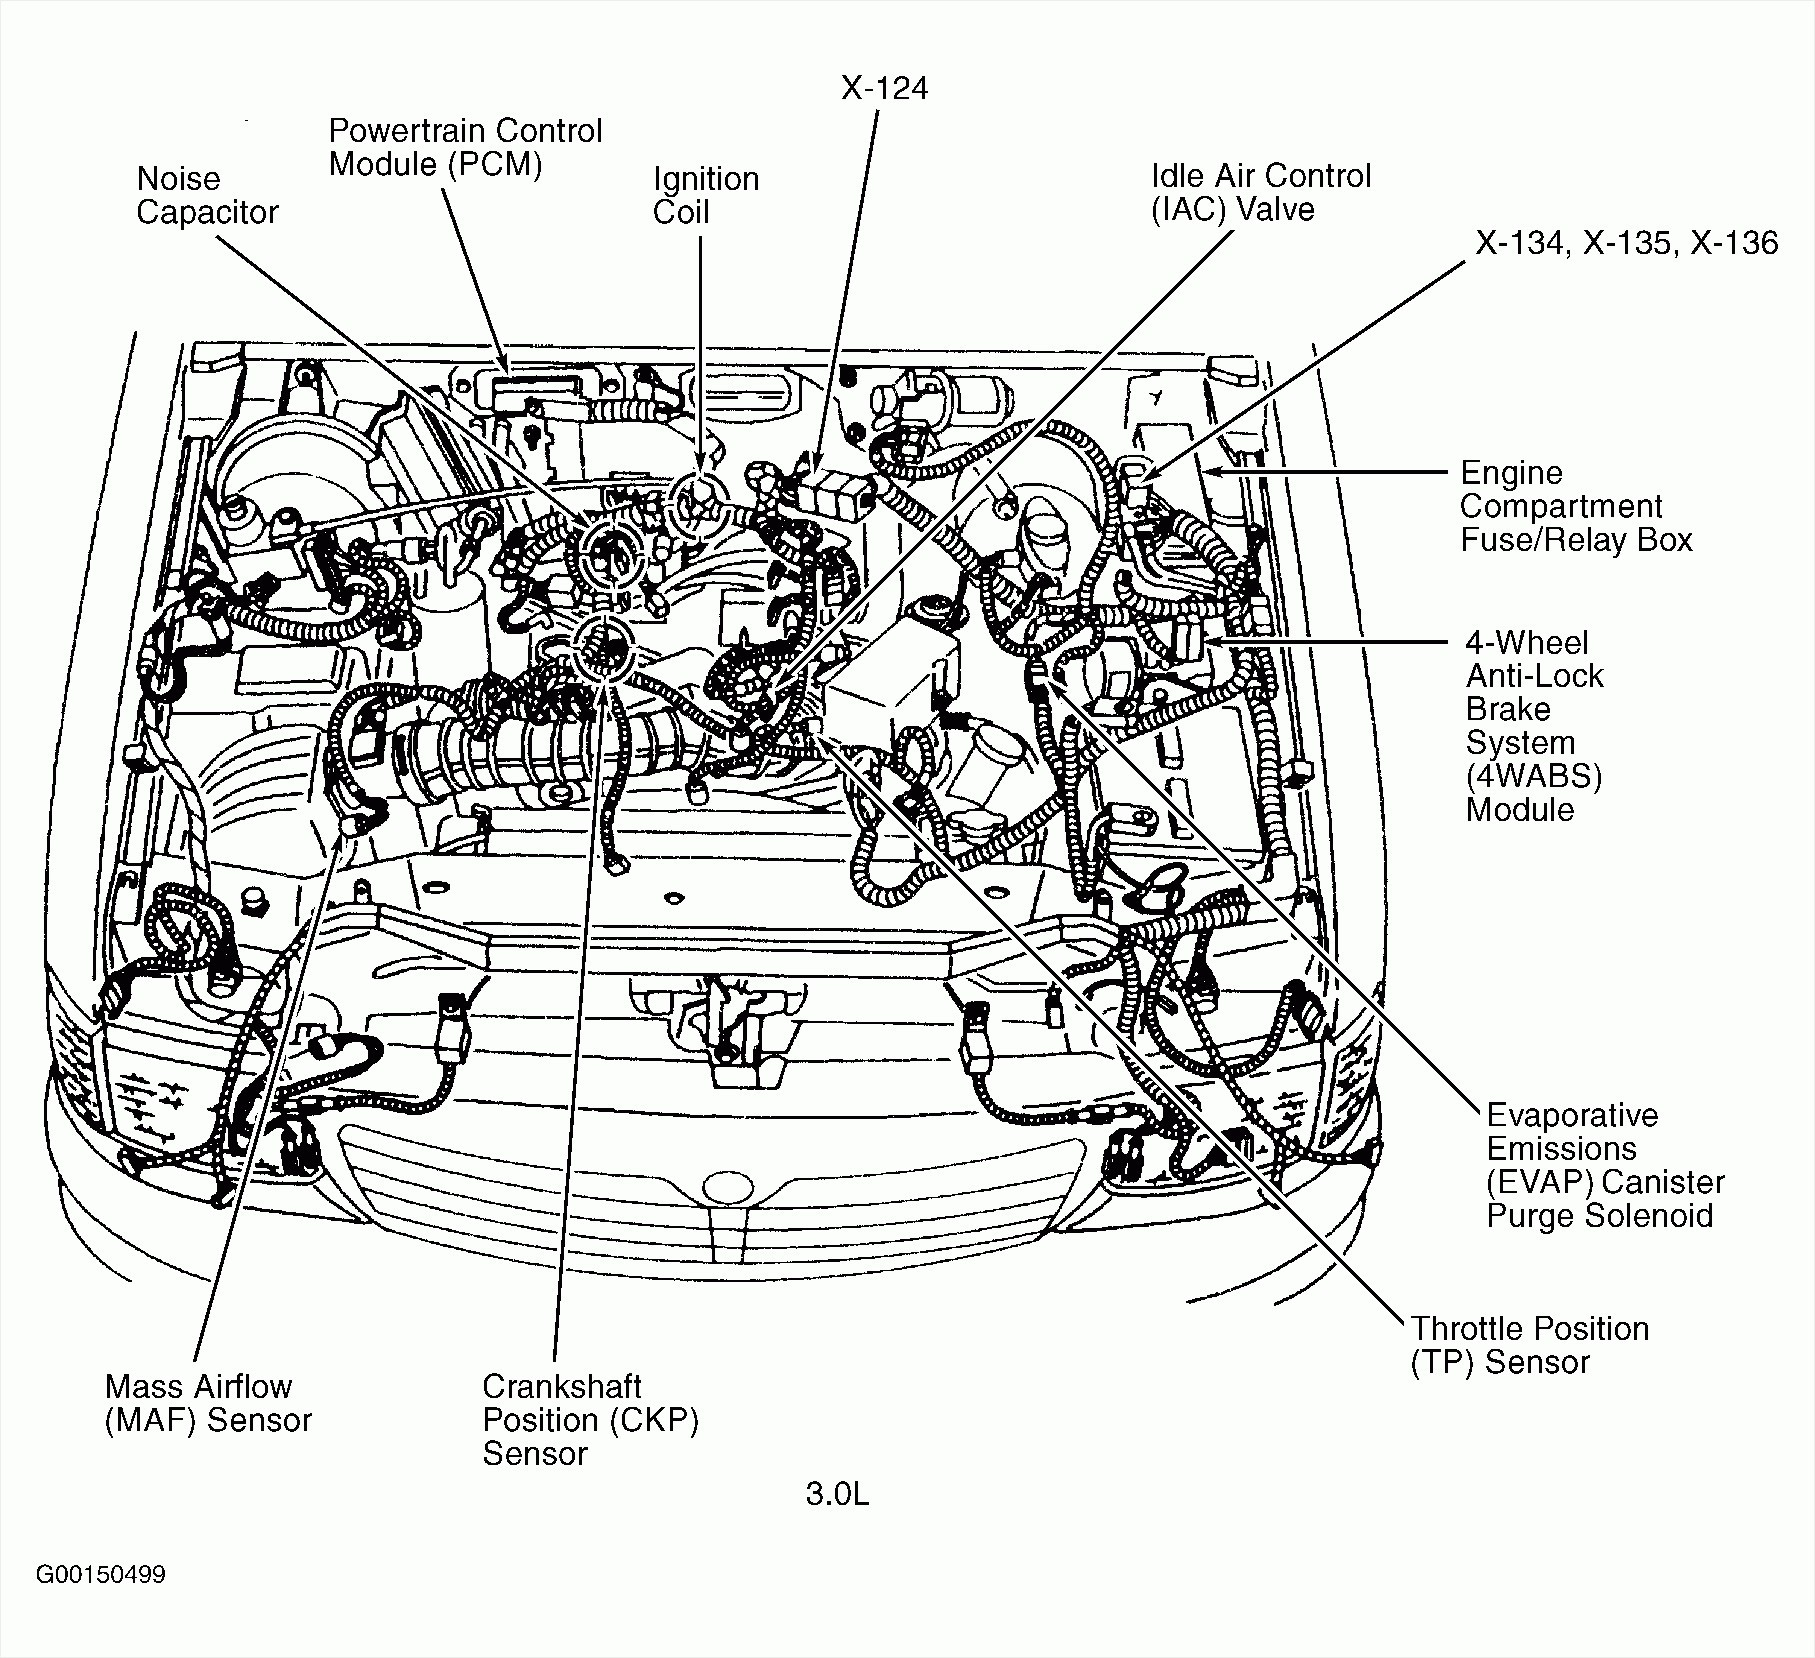 jetta vr6 engine diagram wiring diagram vw cc vr6 diagrm vw jetta vr6 engine diagrams #3